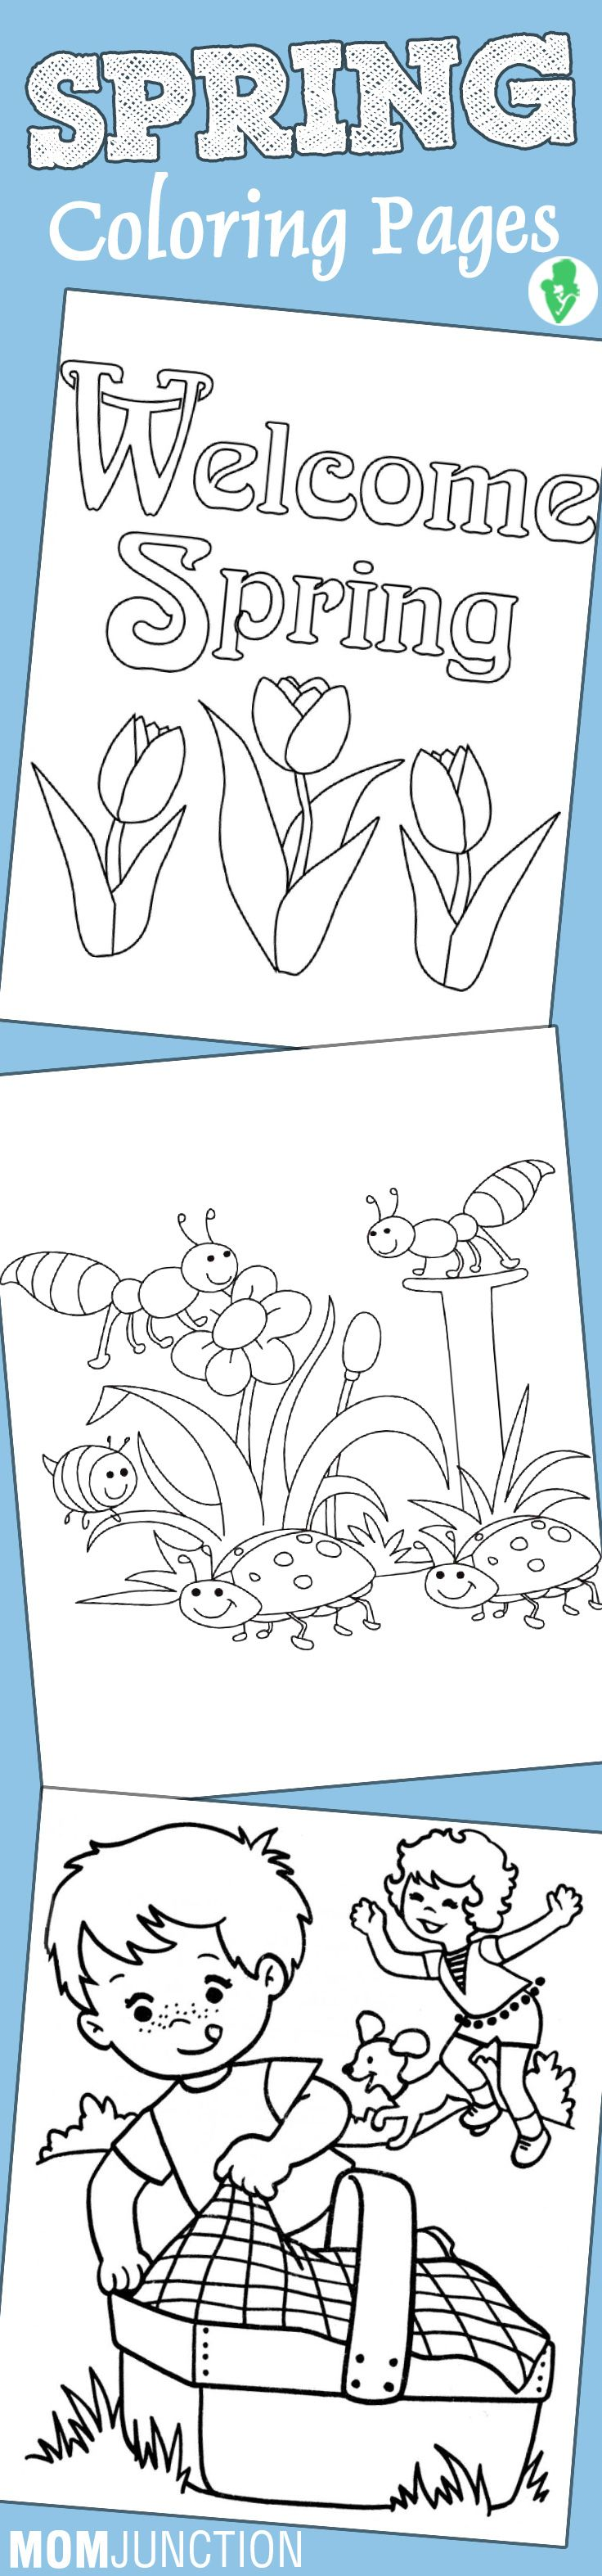 Spring coloring pages for elementary students - Top 10 Spring Coloring Pages Your Toddler Will Love To Color